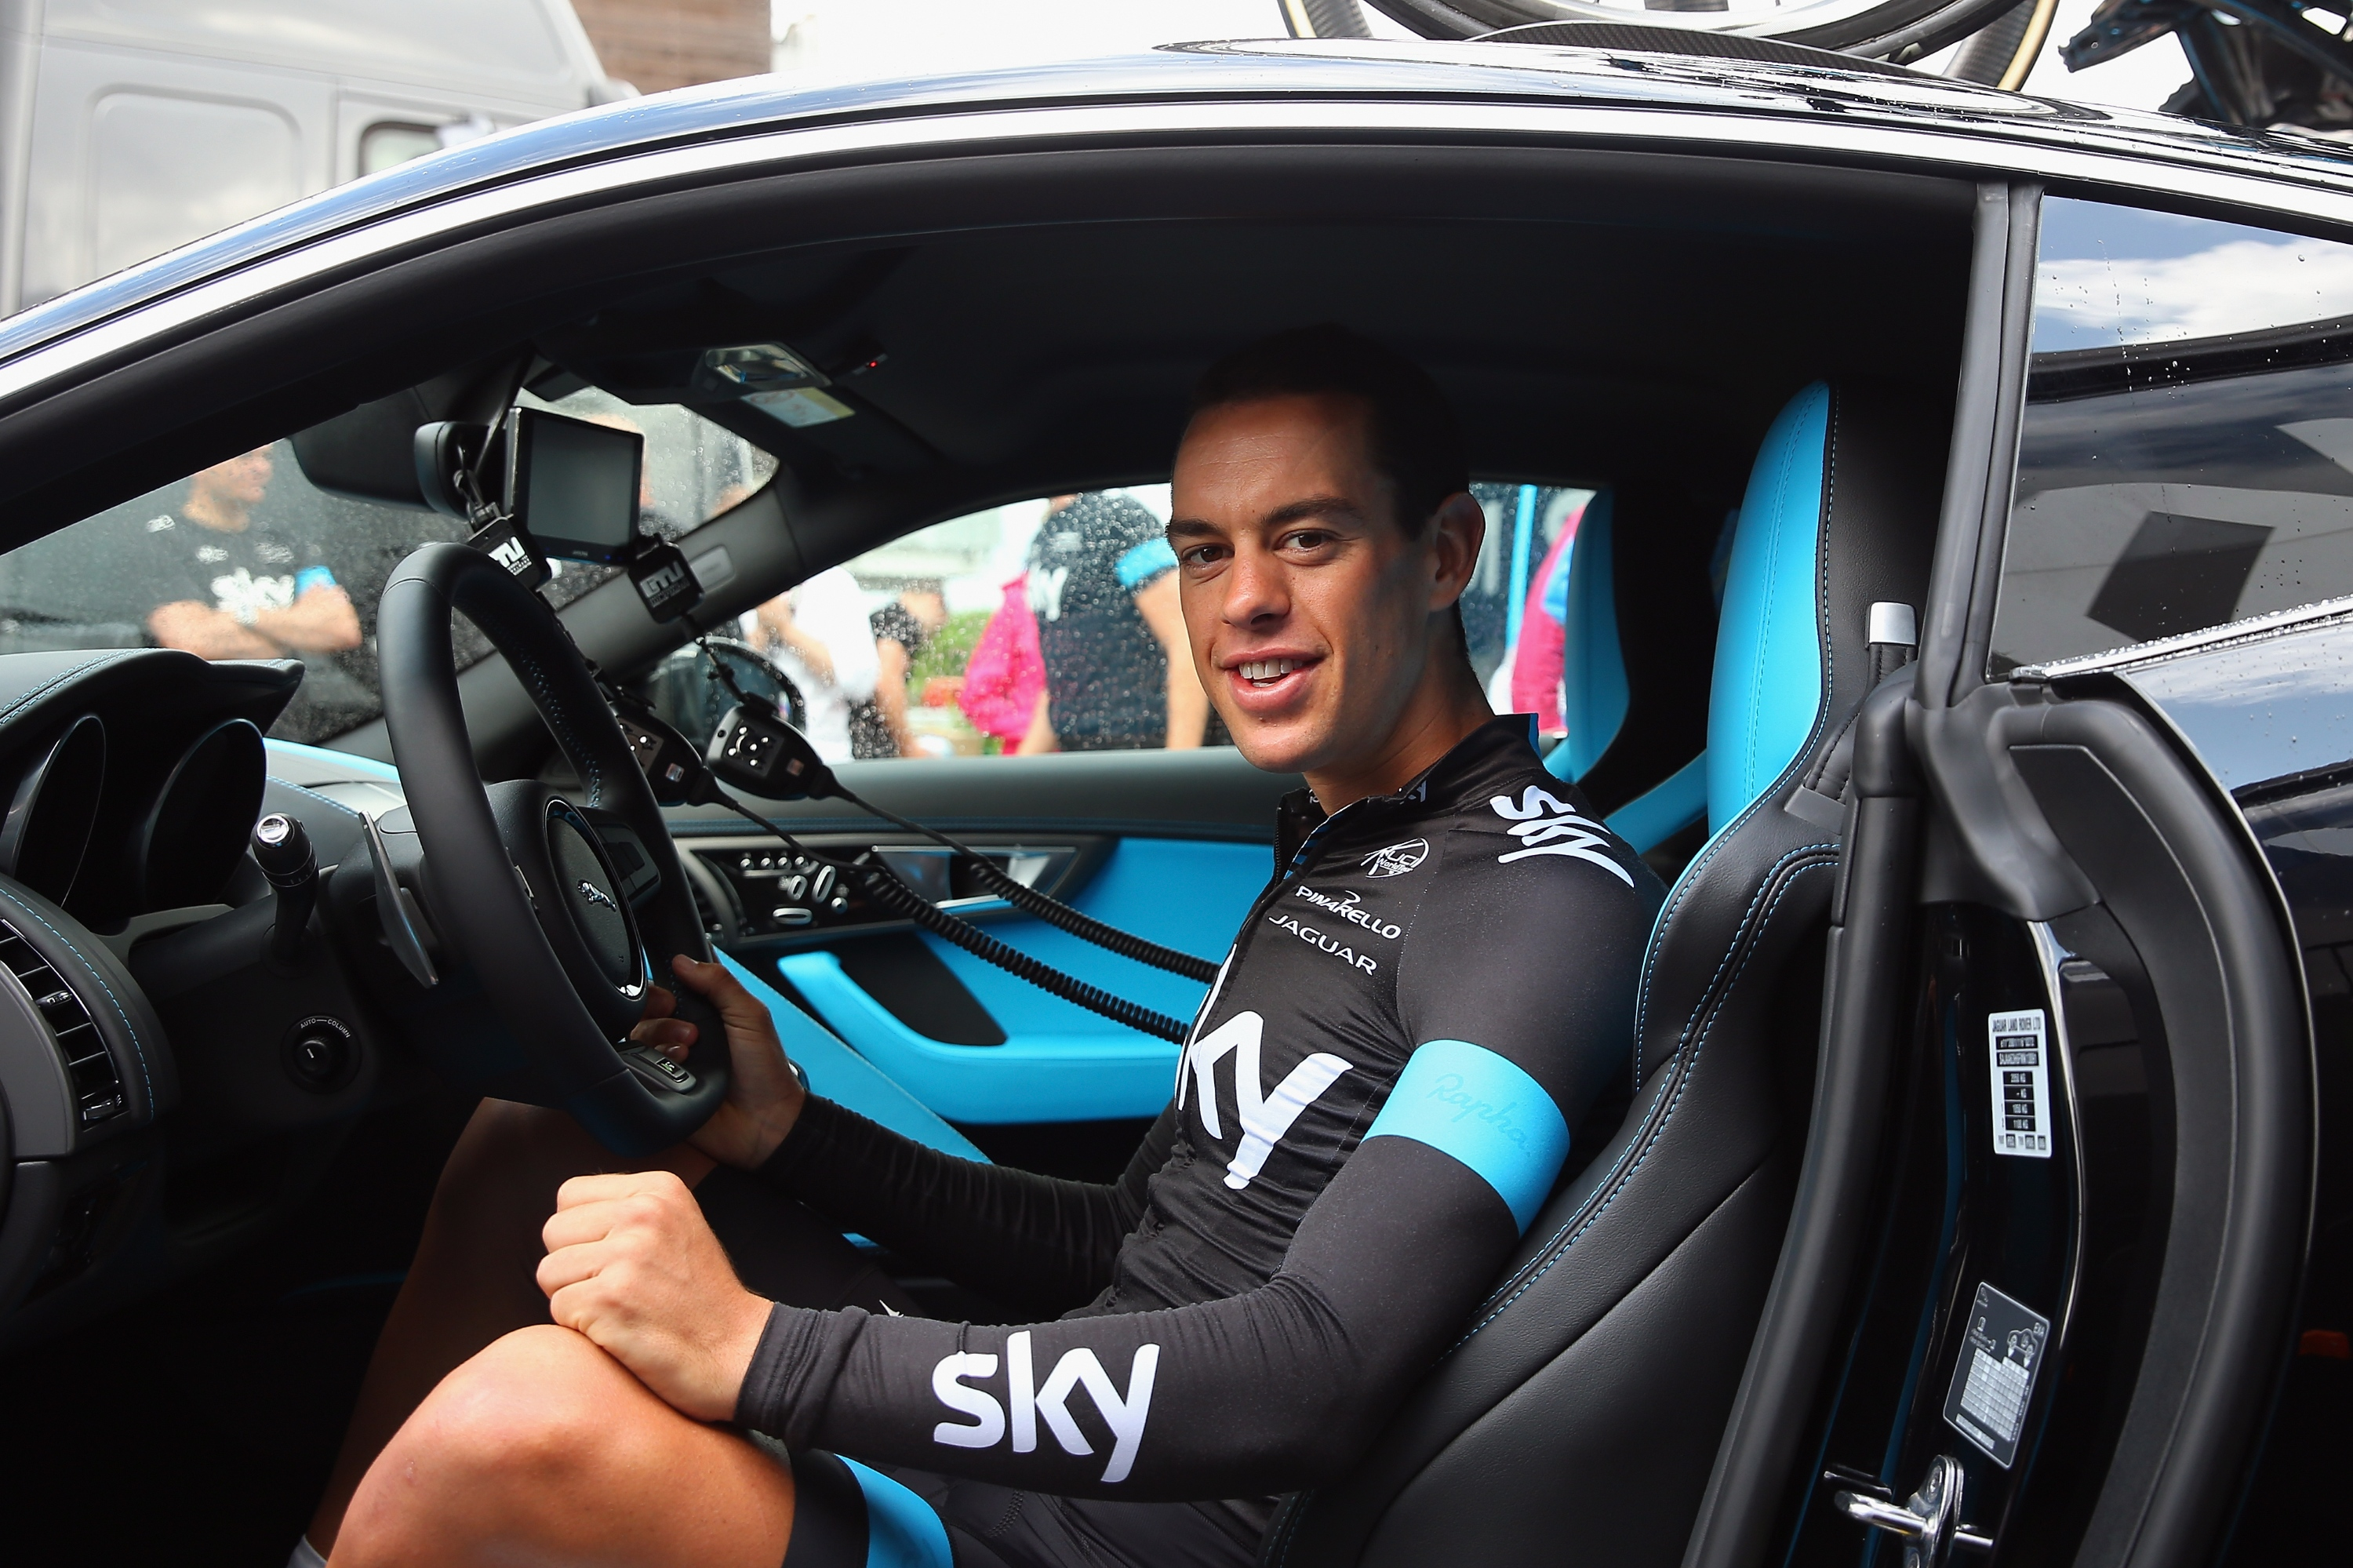 1000 images about richie porte on pinterest for Richie porte latest news